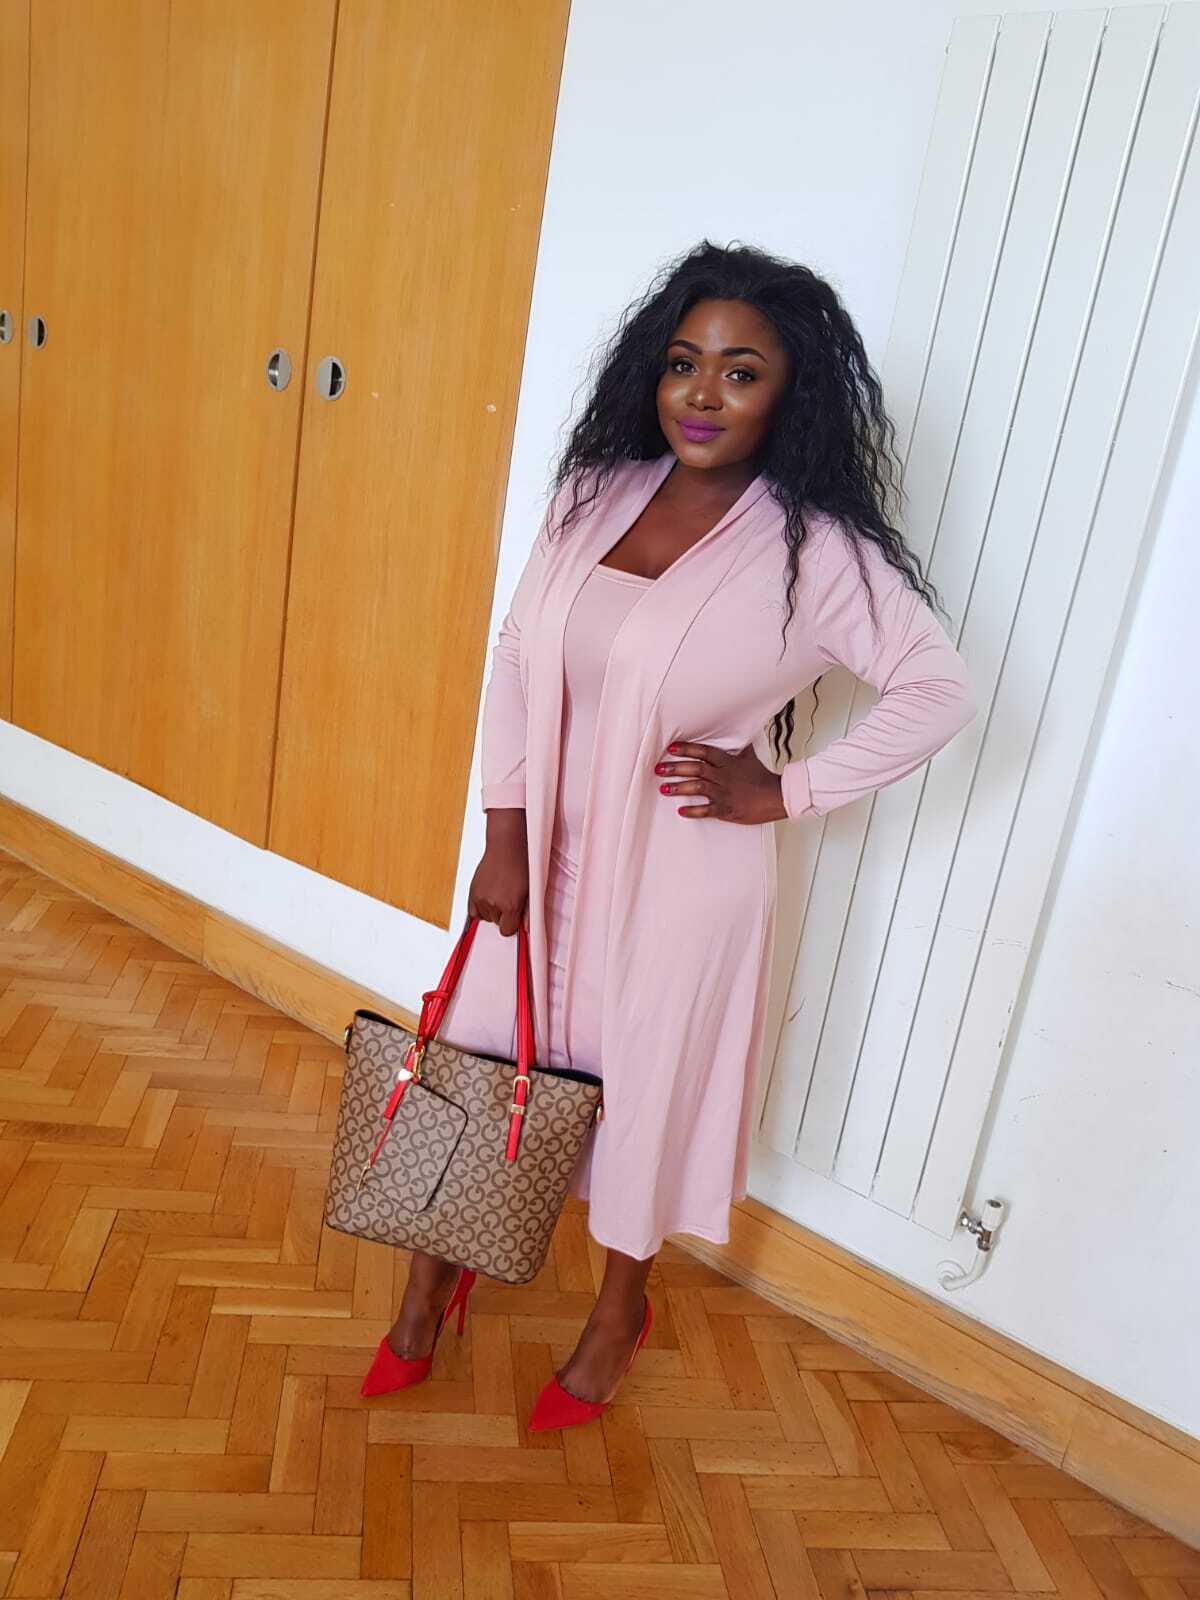 Top Cameroon female celebrities Delly Singah Philips